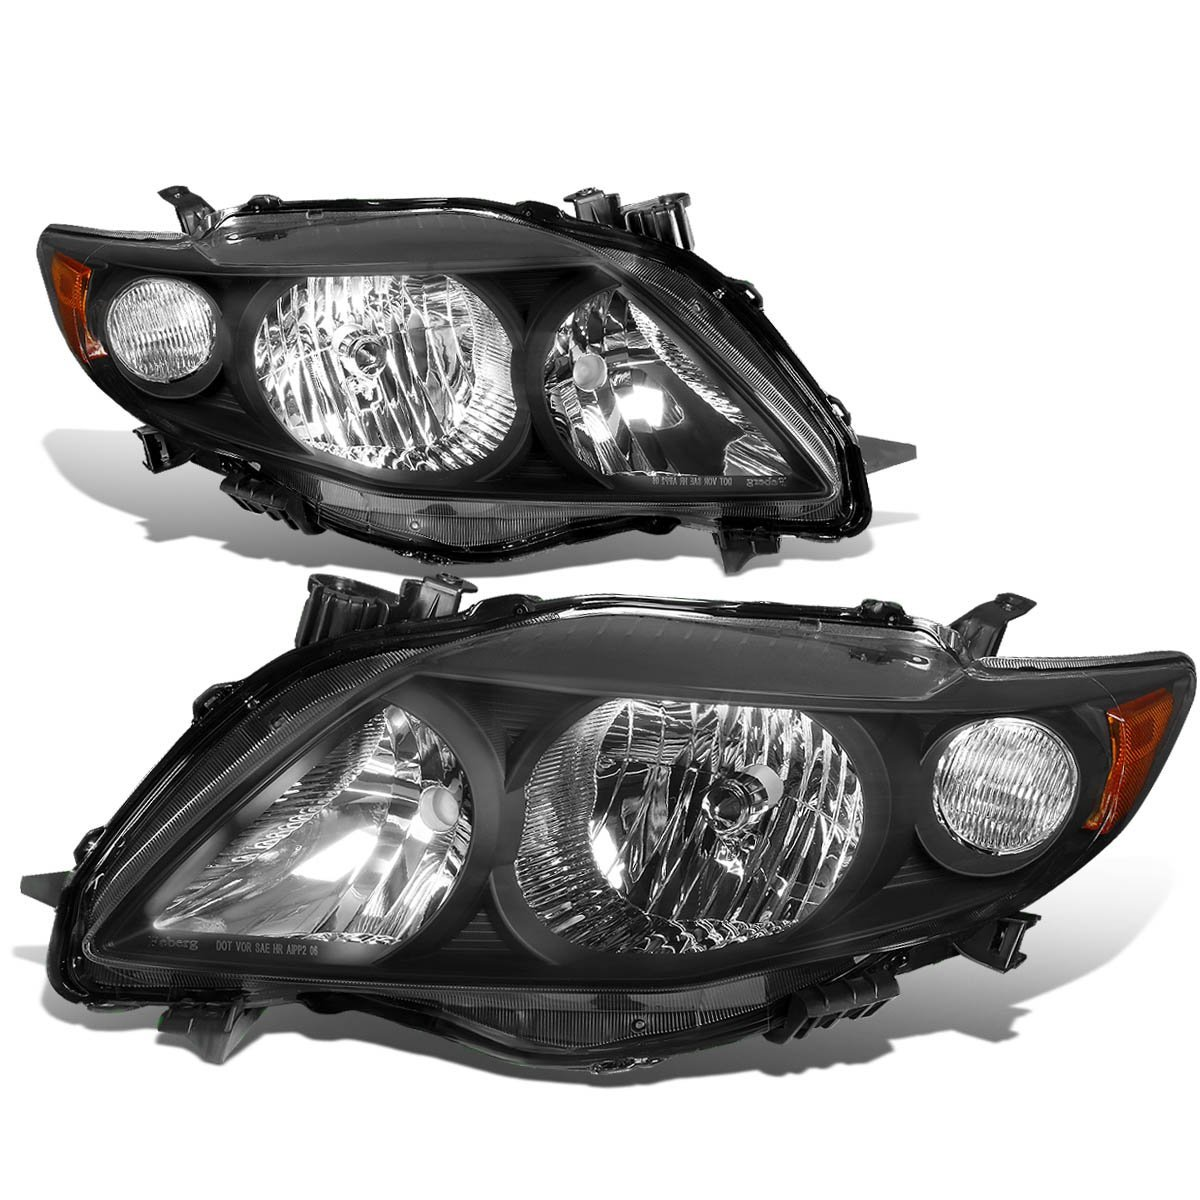 2009 2010 Toyota Corolla Replacement Crystal Headlights Black Click To Enlarge